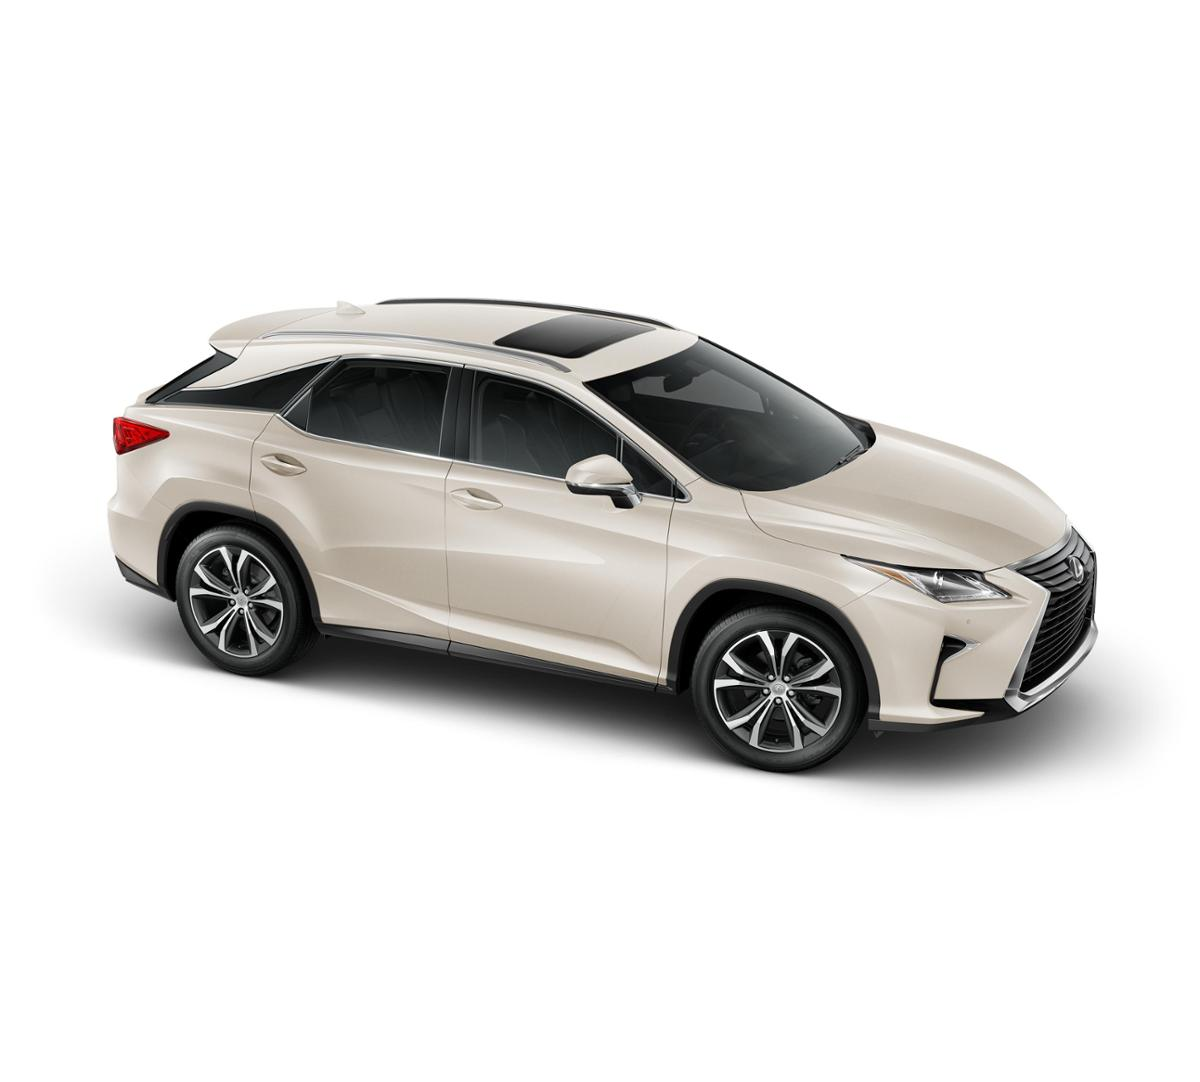 New Suv 2018 Satin Cashmere Metallic Lexus RX 350 RX 350 ...